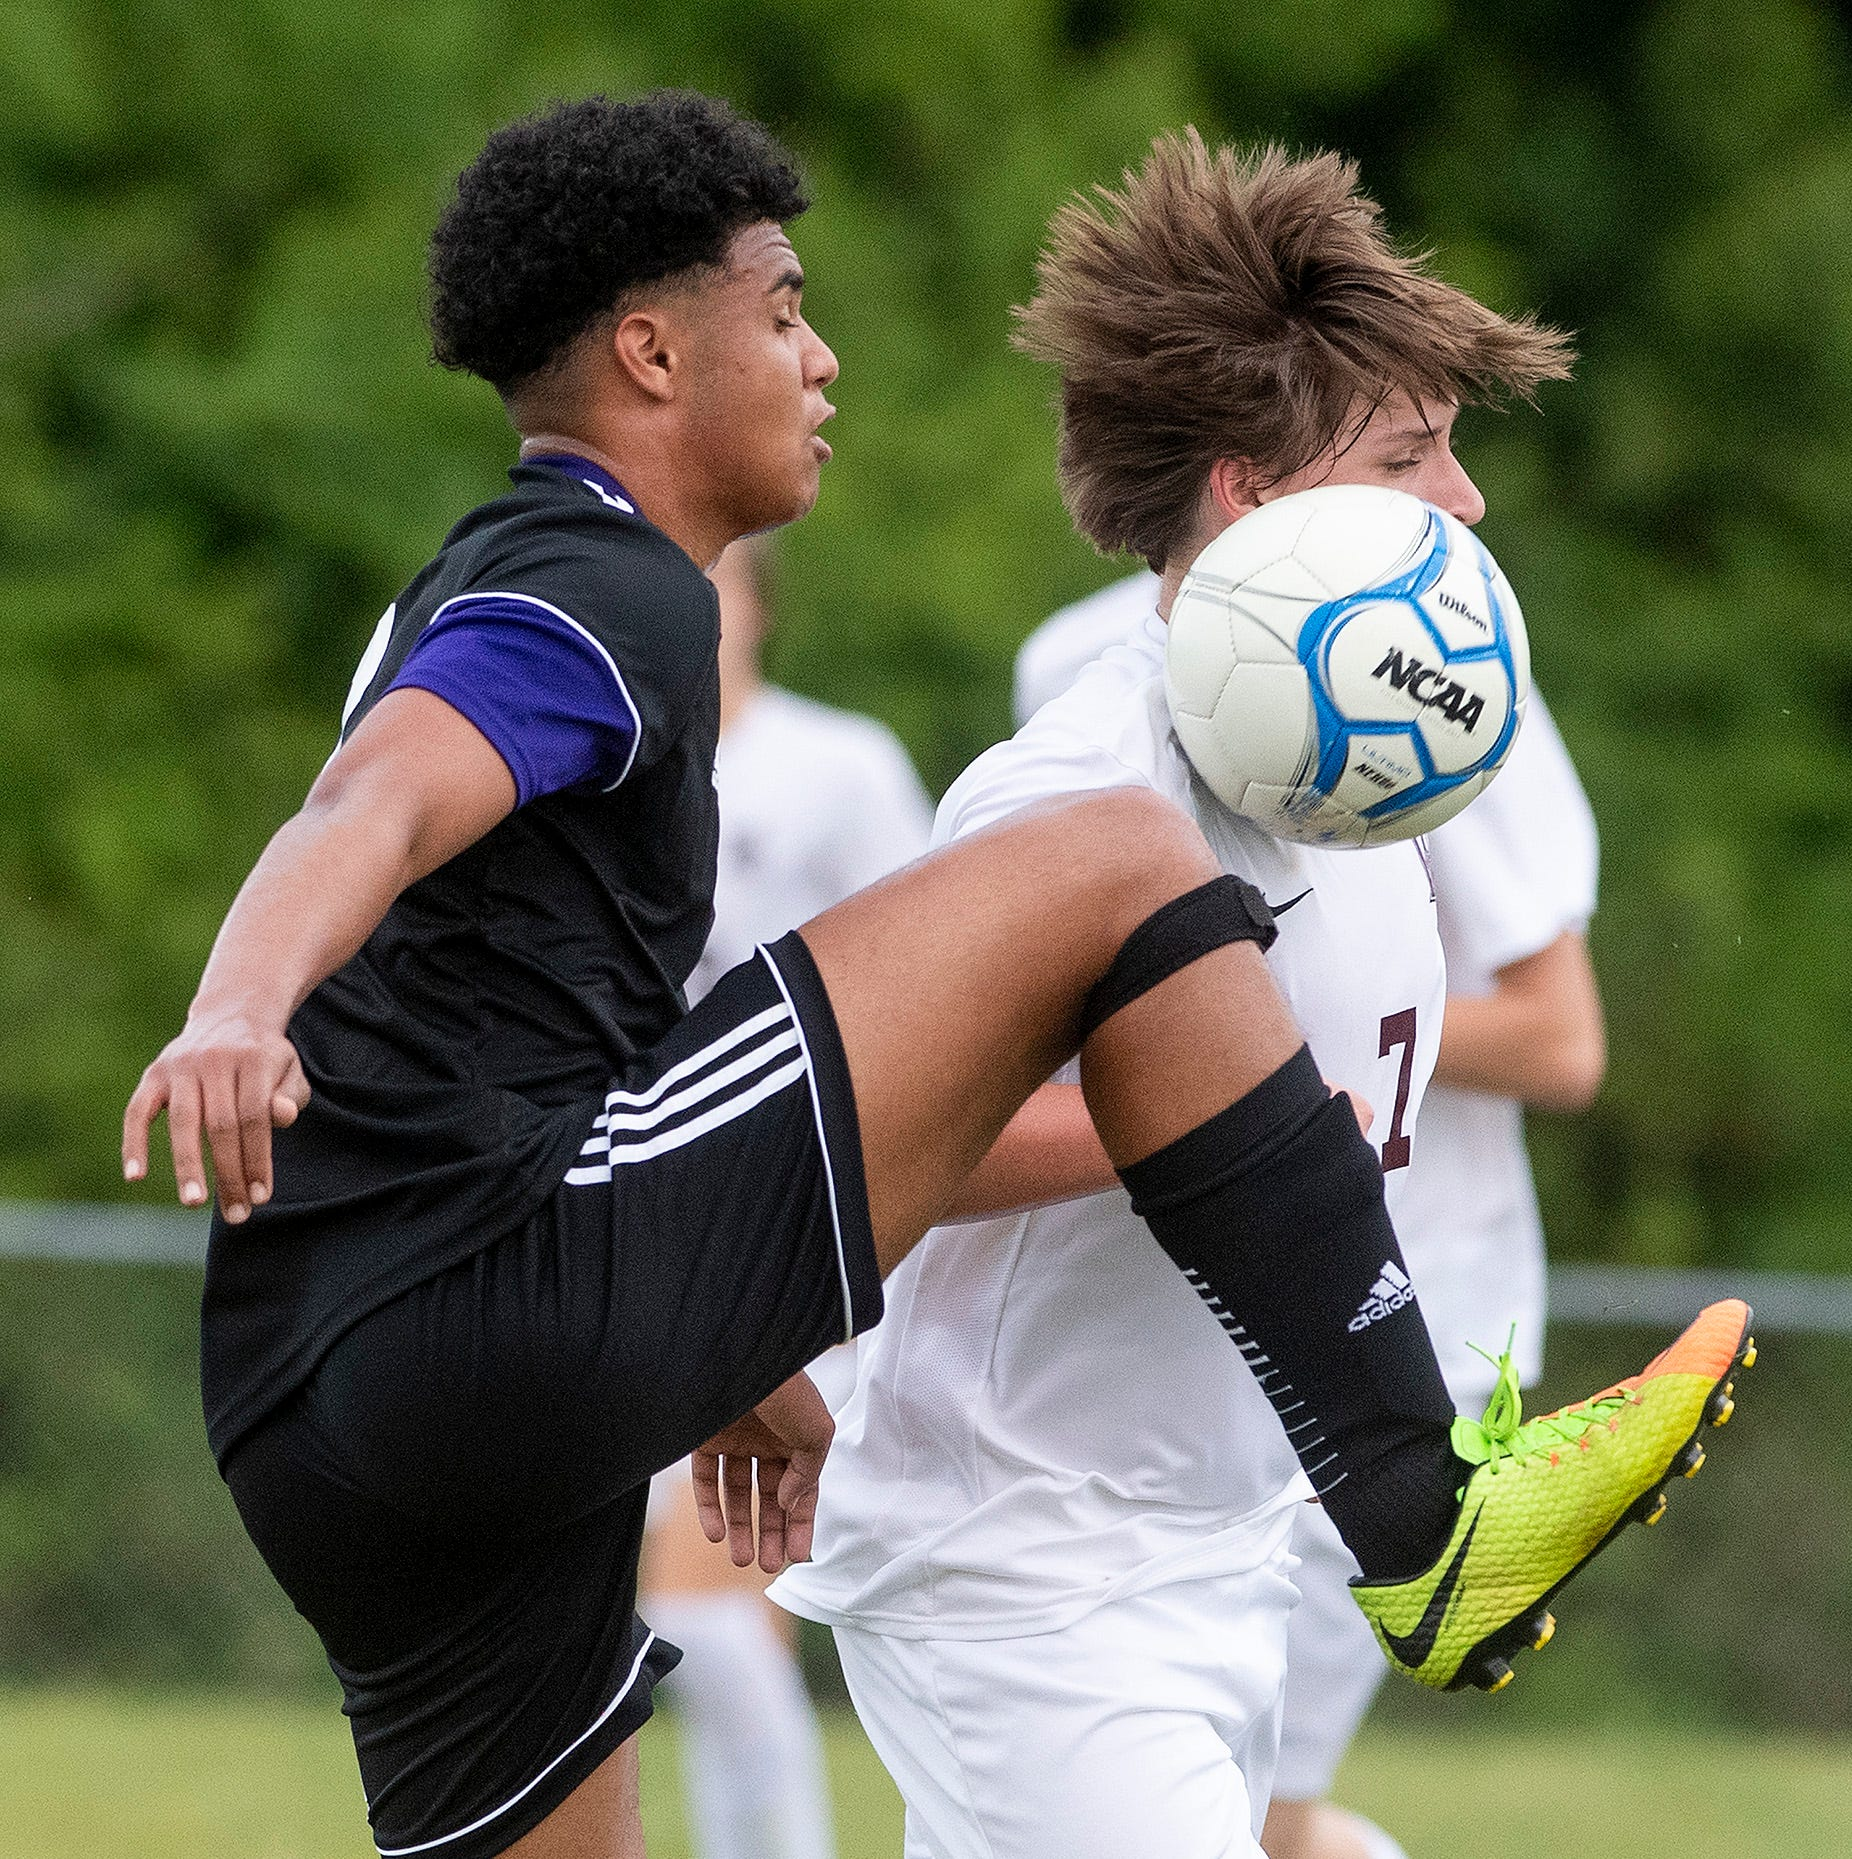 Prattville Christian's Michael McCarty against Washington County on the PCA campus in Prattville, Ala., on Friday April 5, 2019.